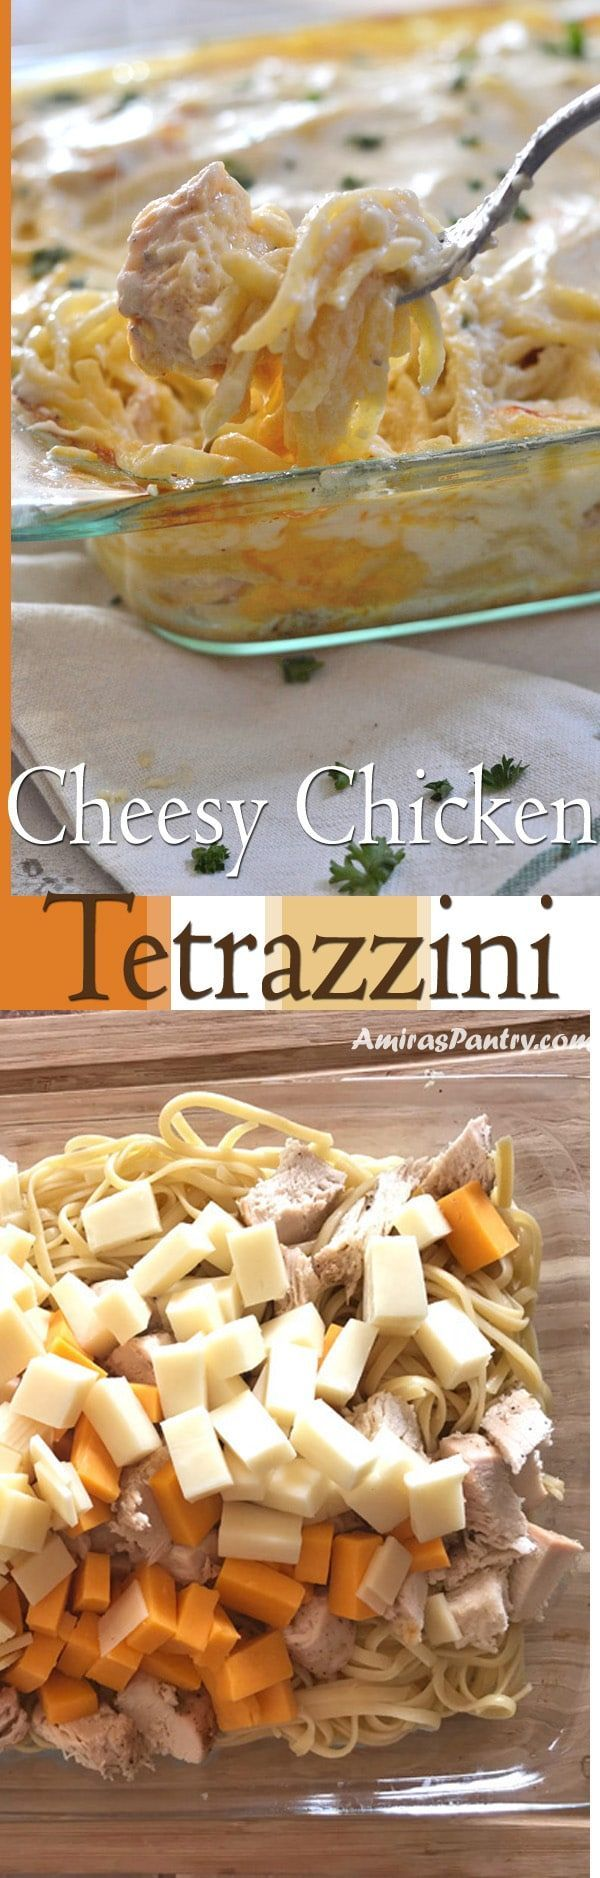 Made-from-scratch creamy, cheesy Chicken Tetrazzini. One of the easy baked chicken pasta recipes that I've ever made. This is how to make chicken tetrazzini, very tasty, creamy and loaded with cheese. #pasta #pastarecipes #dinner | amiraspantry.com